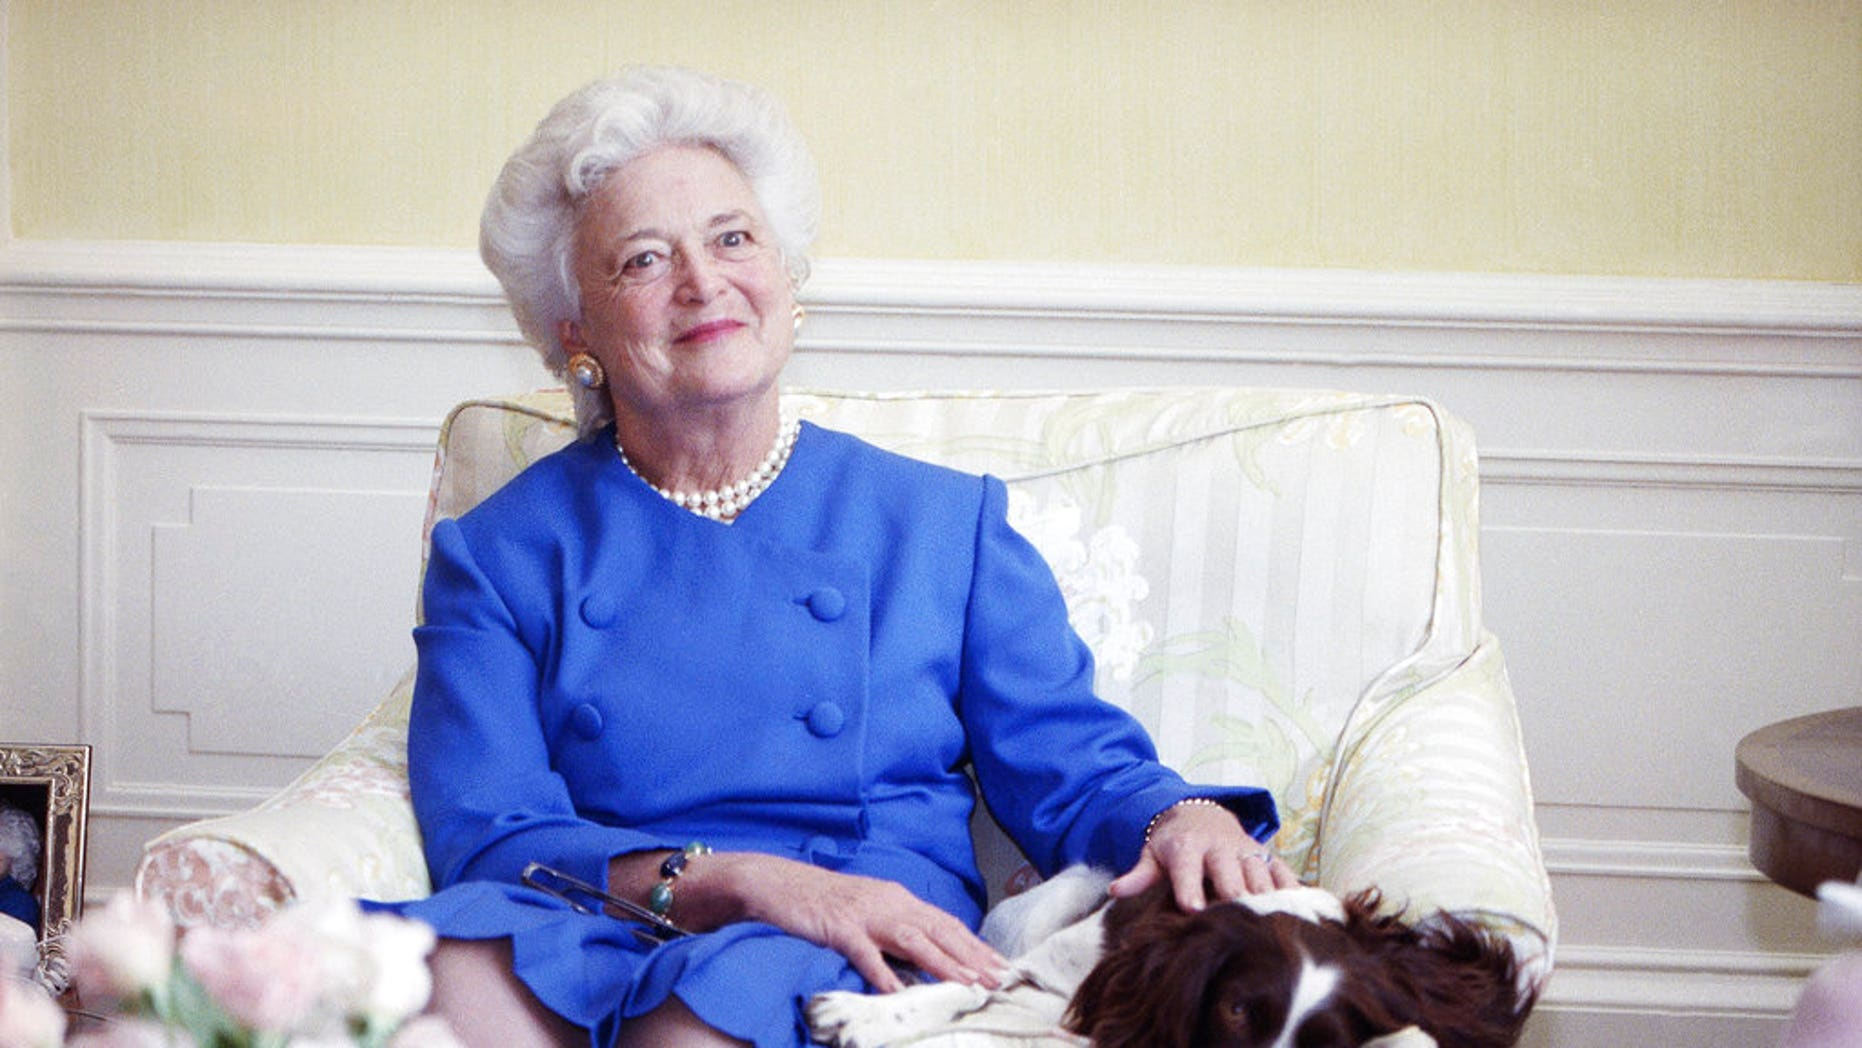 FILE - In this 1990 file photo, first lady Barbara Bush poses with her dog Millie in Washington. A family spokesman said Tuesday, April 17, 2018, that former first lady Barbara Bush has died at the age of 92. (AP Photo/Doug Mills, File)